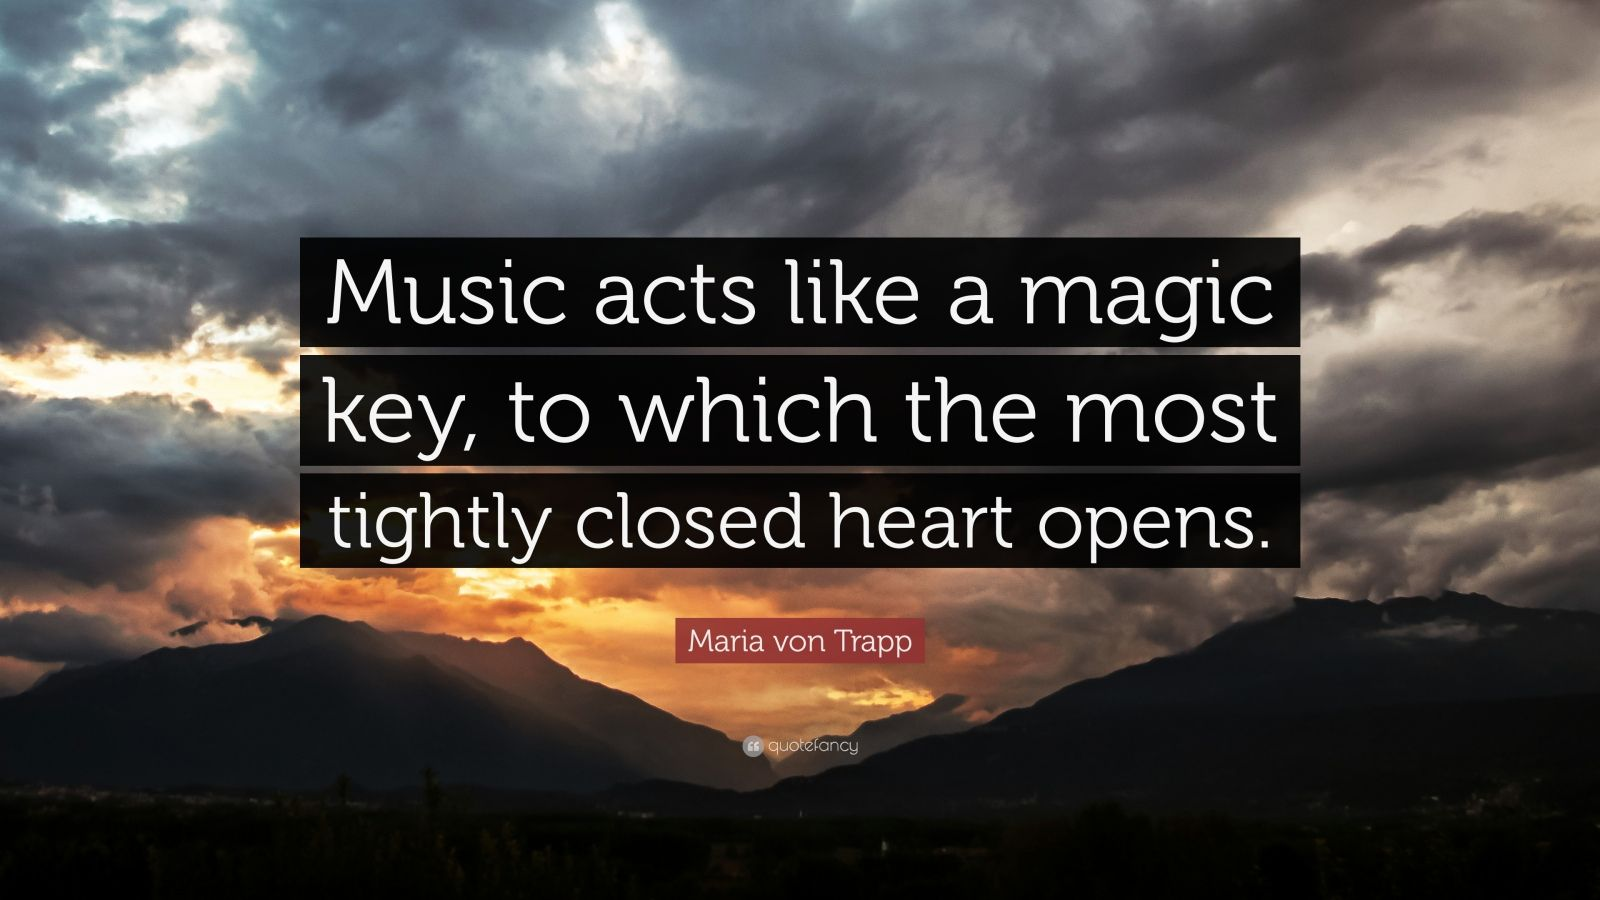 Roald Dahl Quotes Wallpaper Maria Von Trapp Quote Music Acts Like A Magic Key To